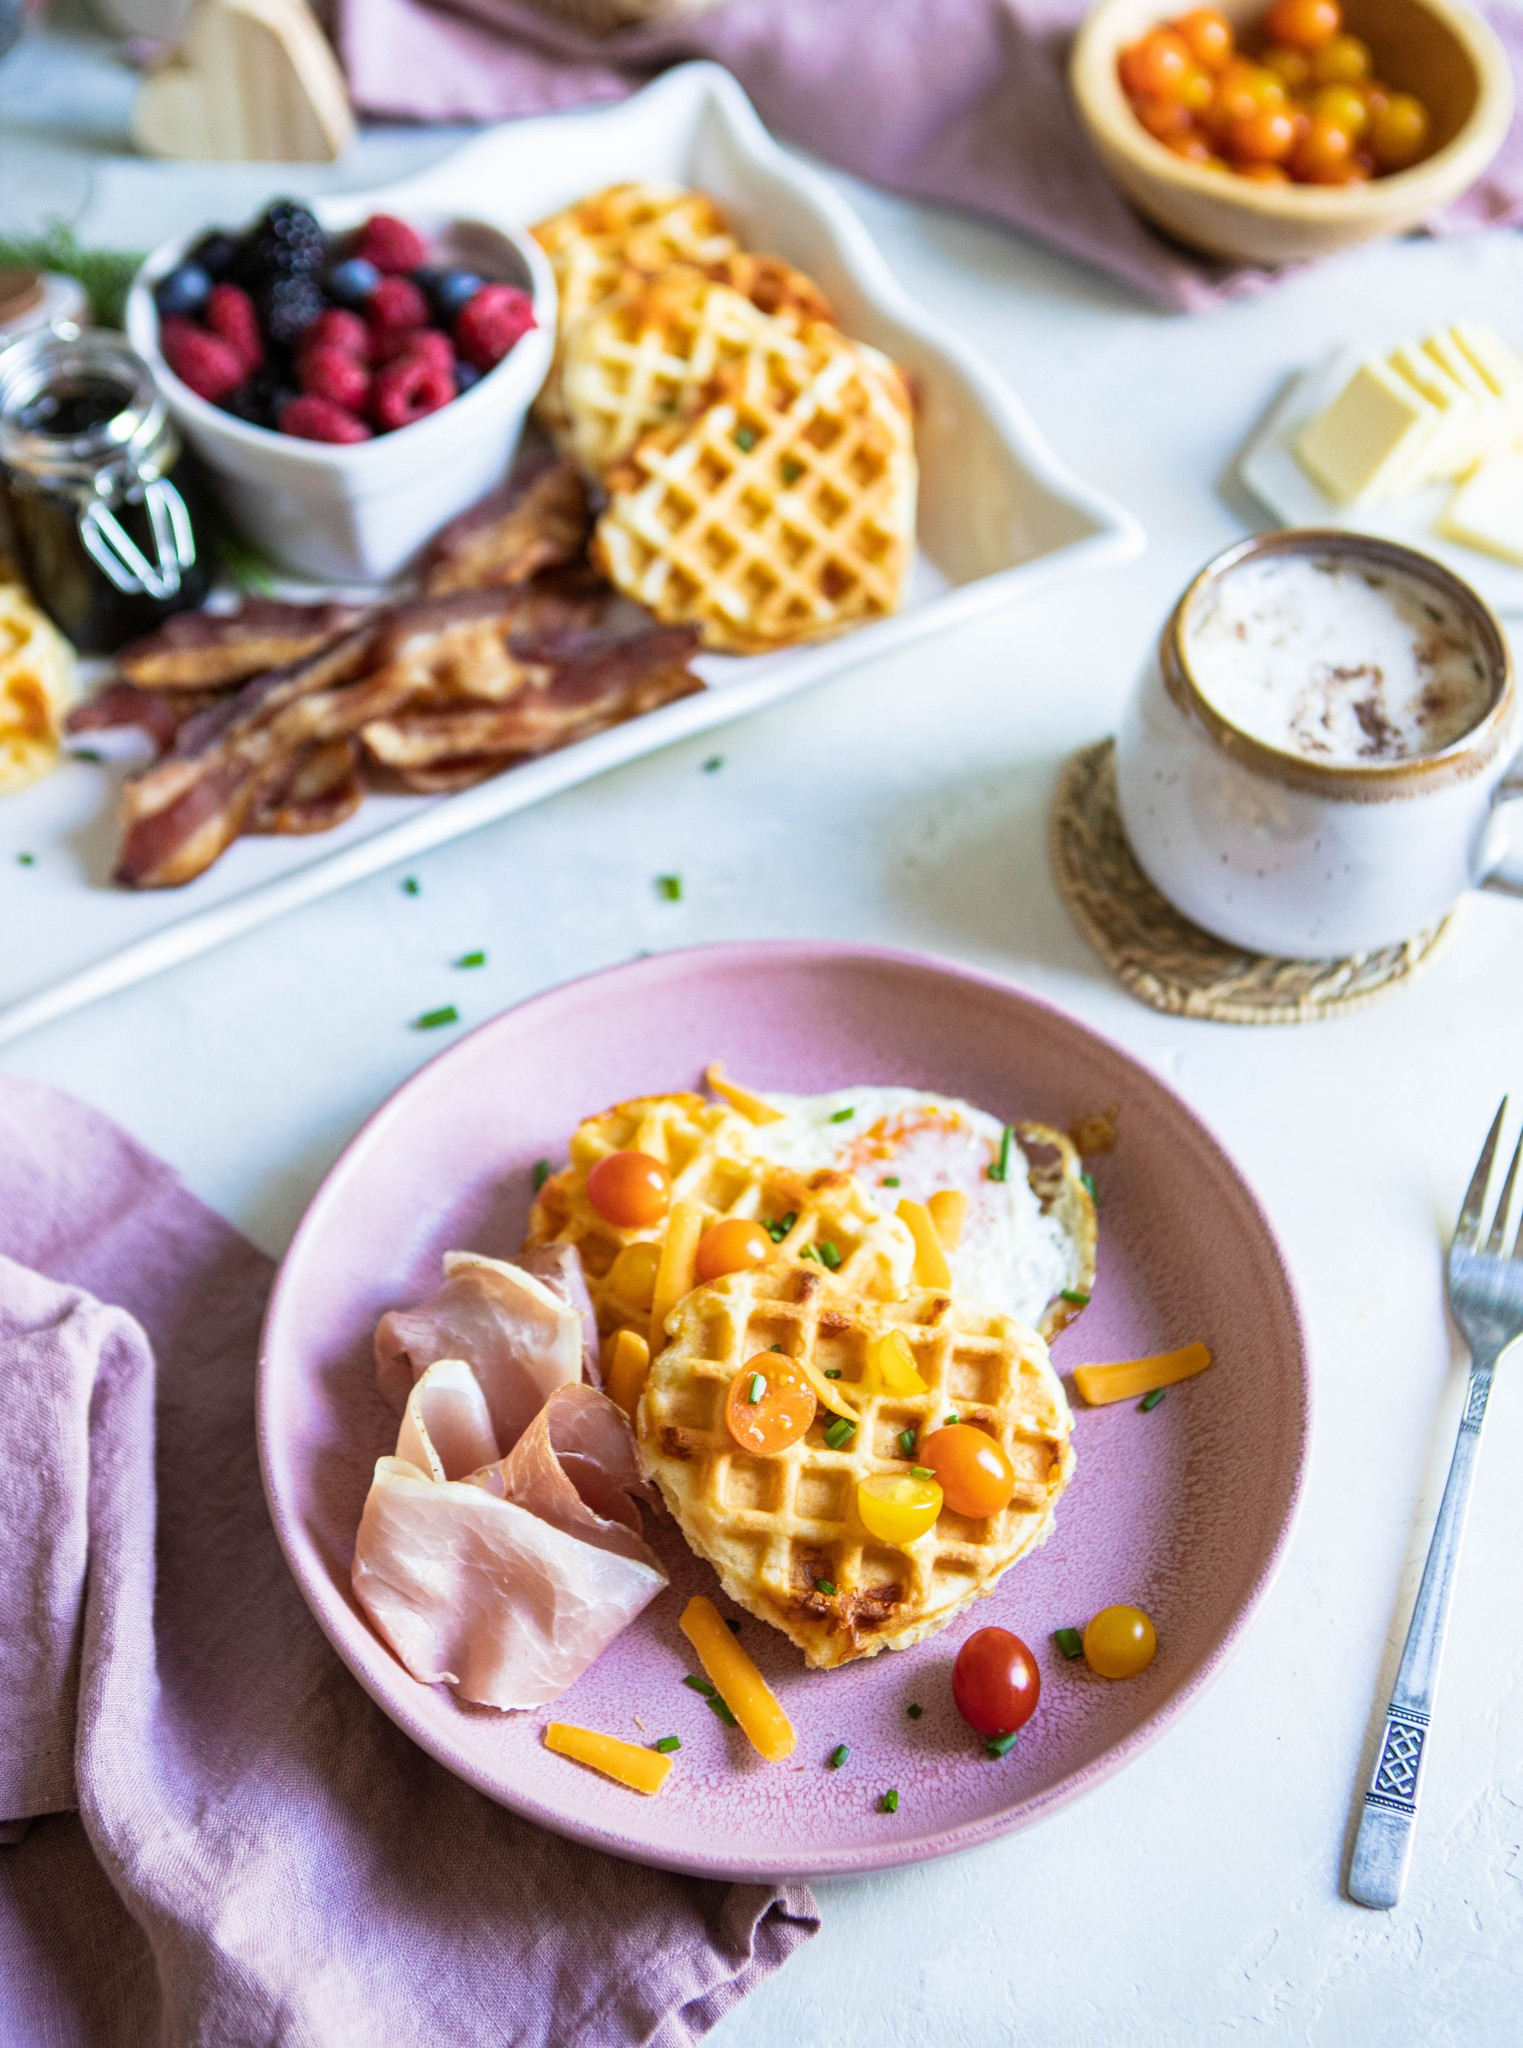 savory waffles on a pink plate next to fruit, and a latte on a white background